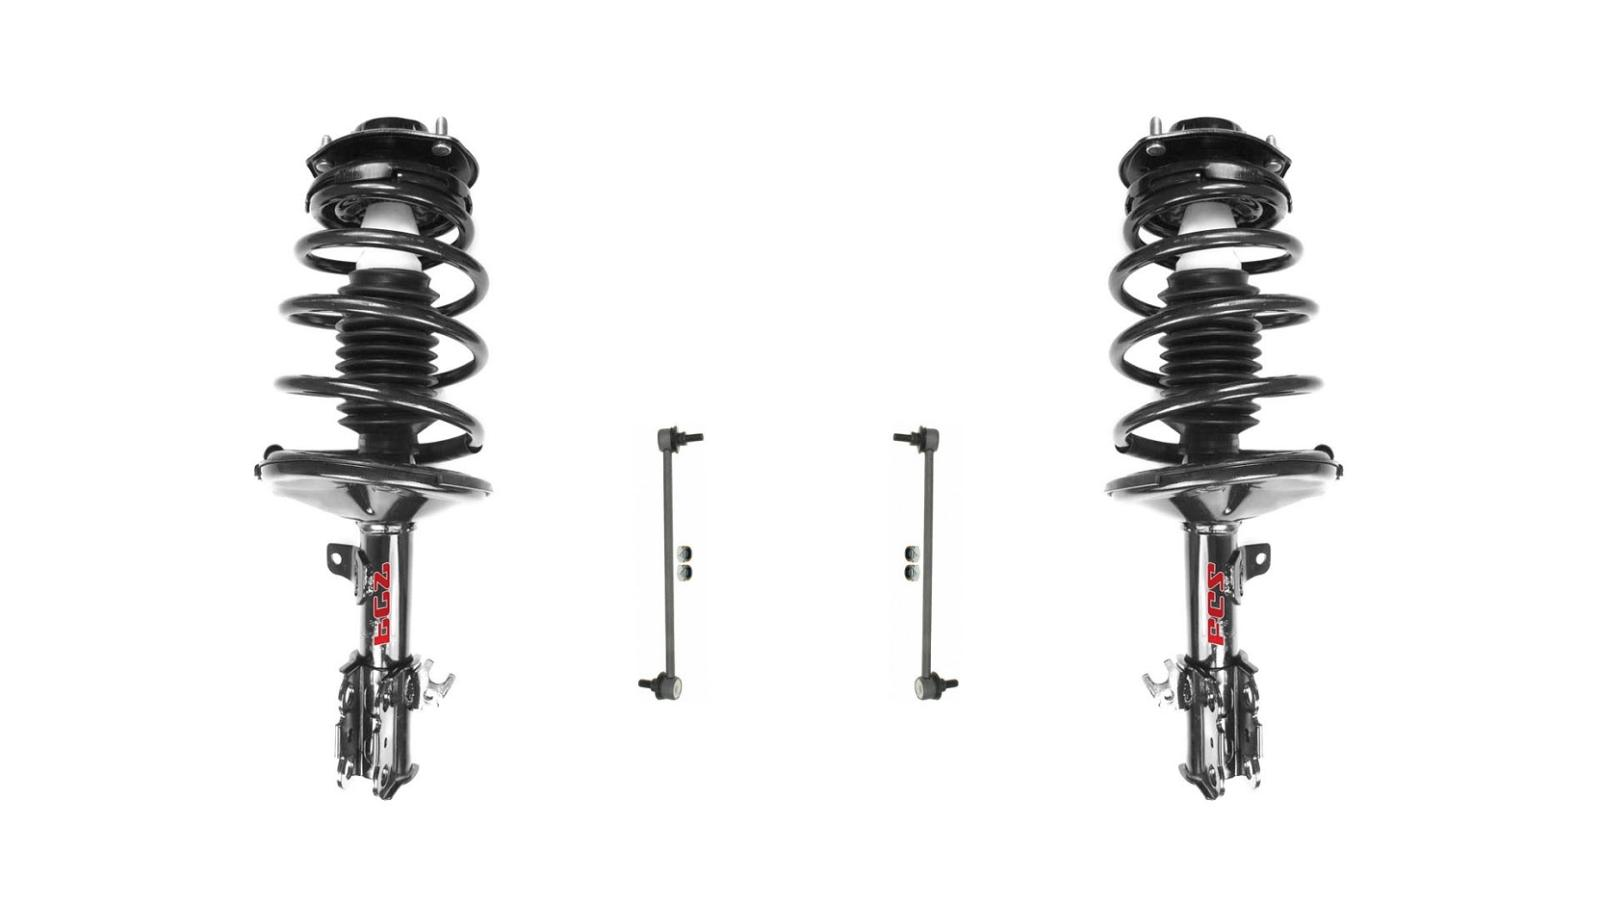 97 01 Camry 2 2 99 03 Solara 2 L Amp R Front Quick Spring Strut And Mount 4pc